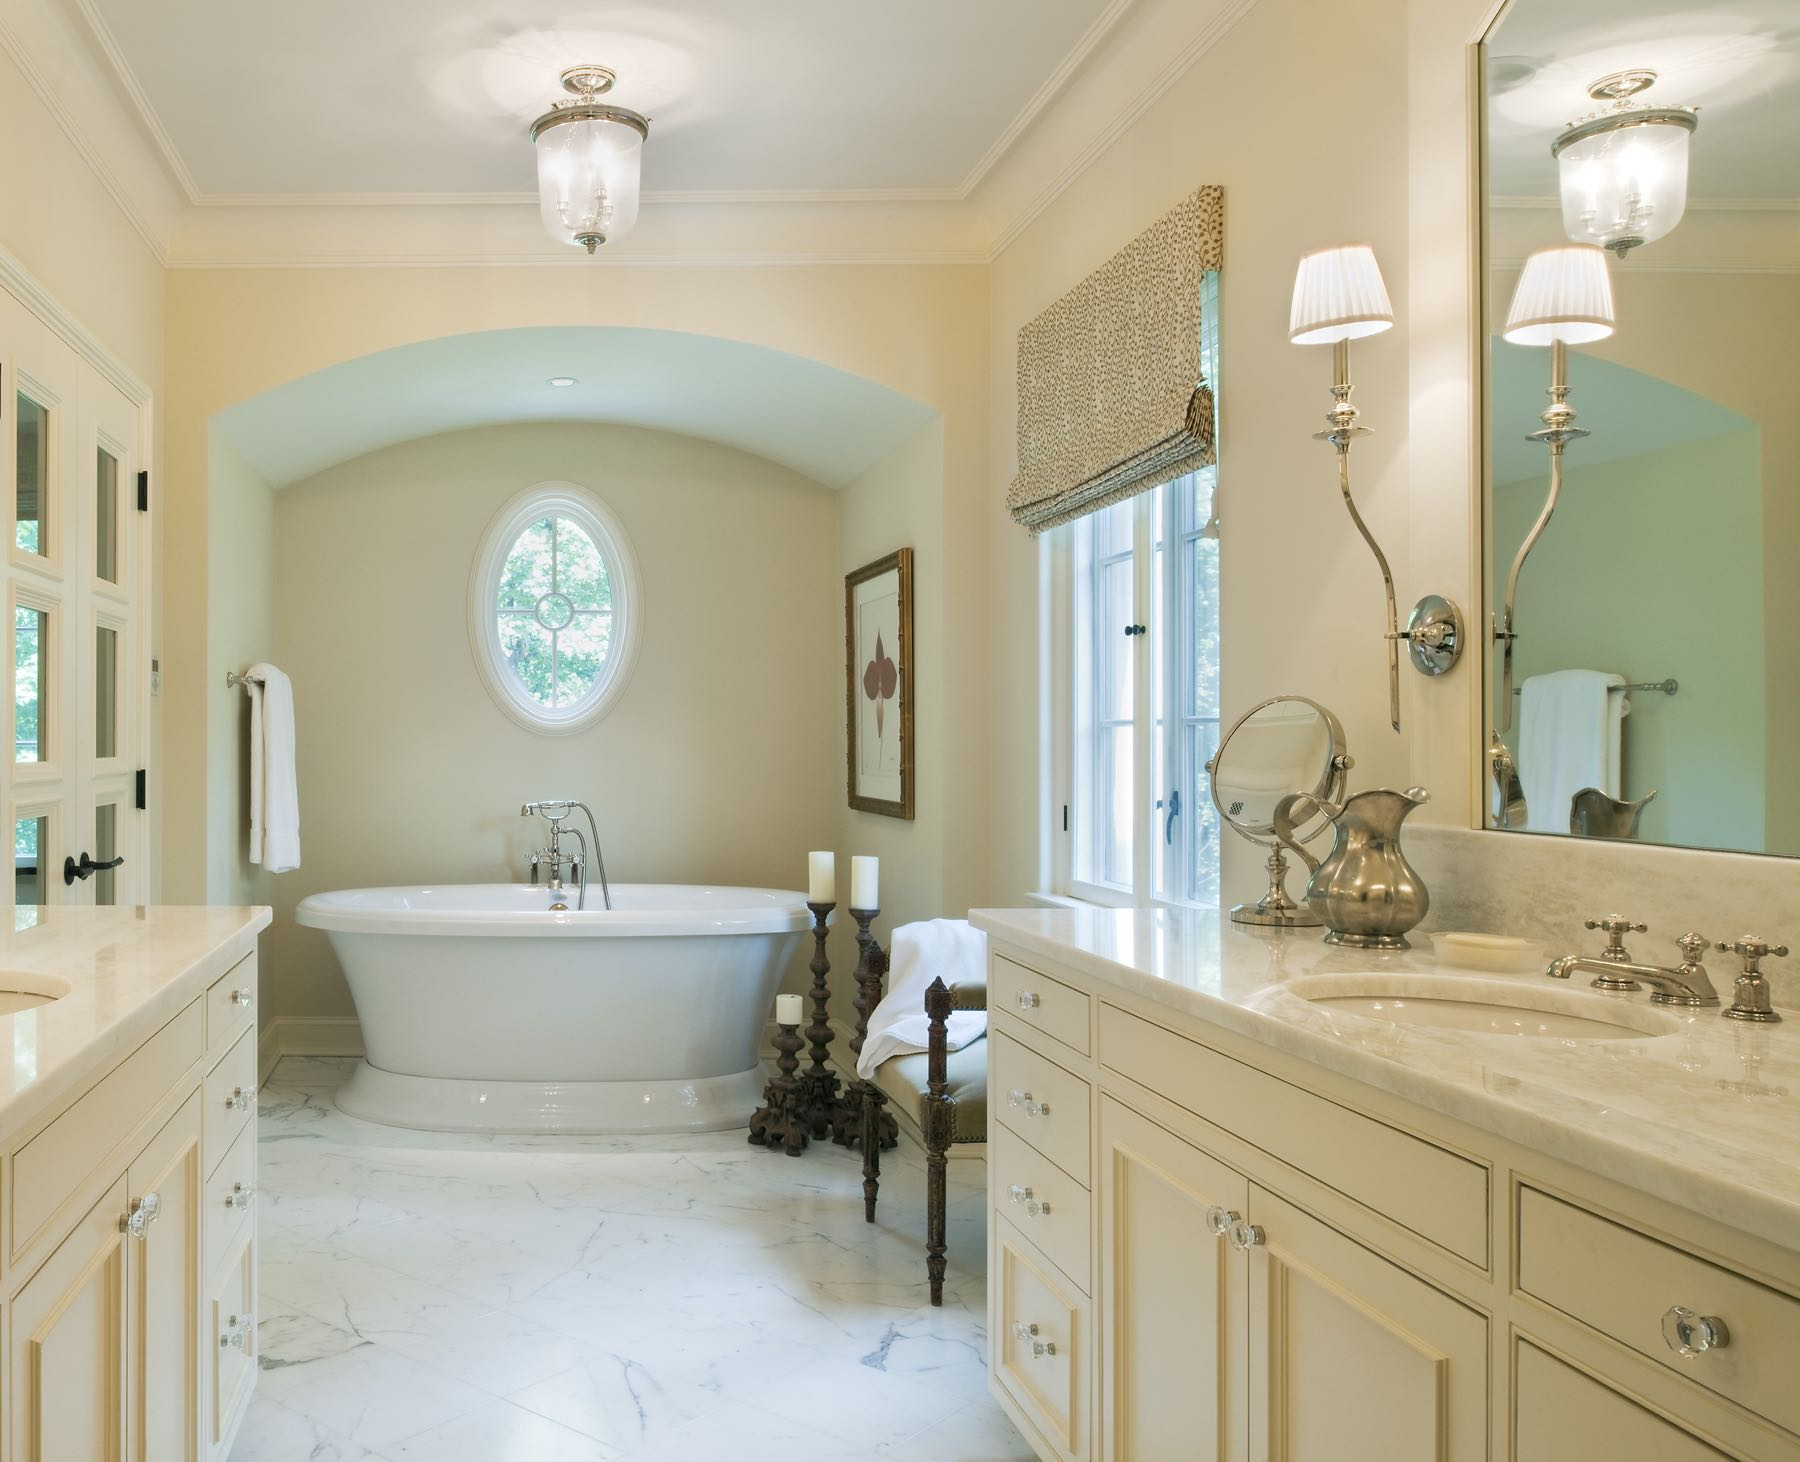 Work performed while at Barnes Vanze Architects | Hoachlander Davis Photography |